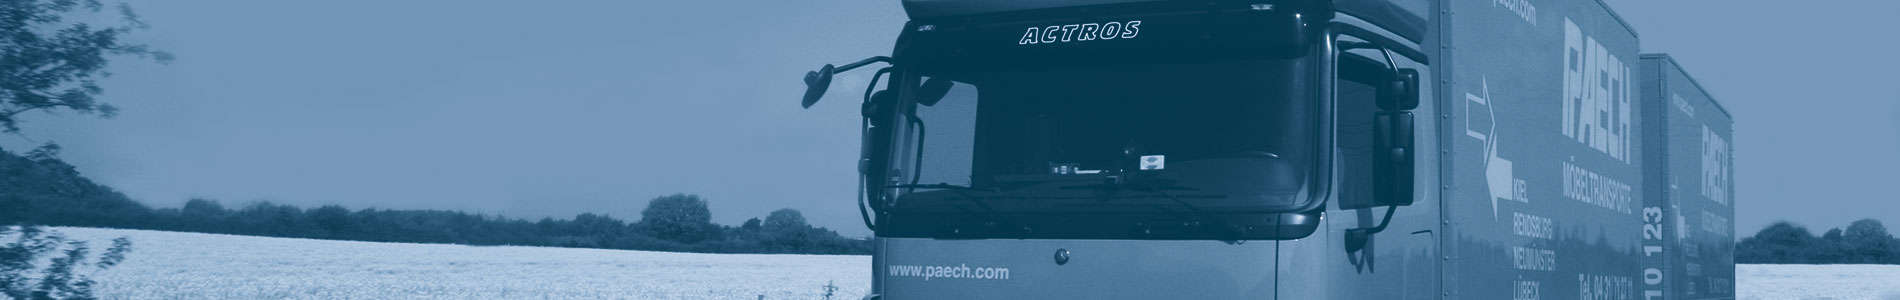 Ute Paech GmbH & Co. KG - Everything for your move